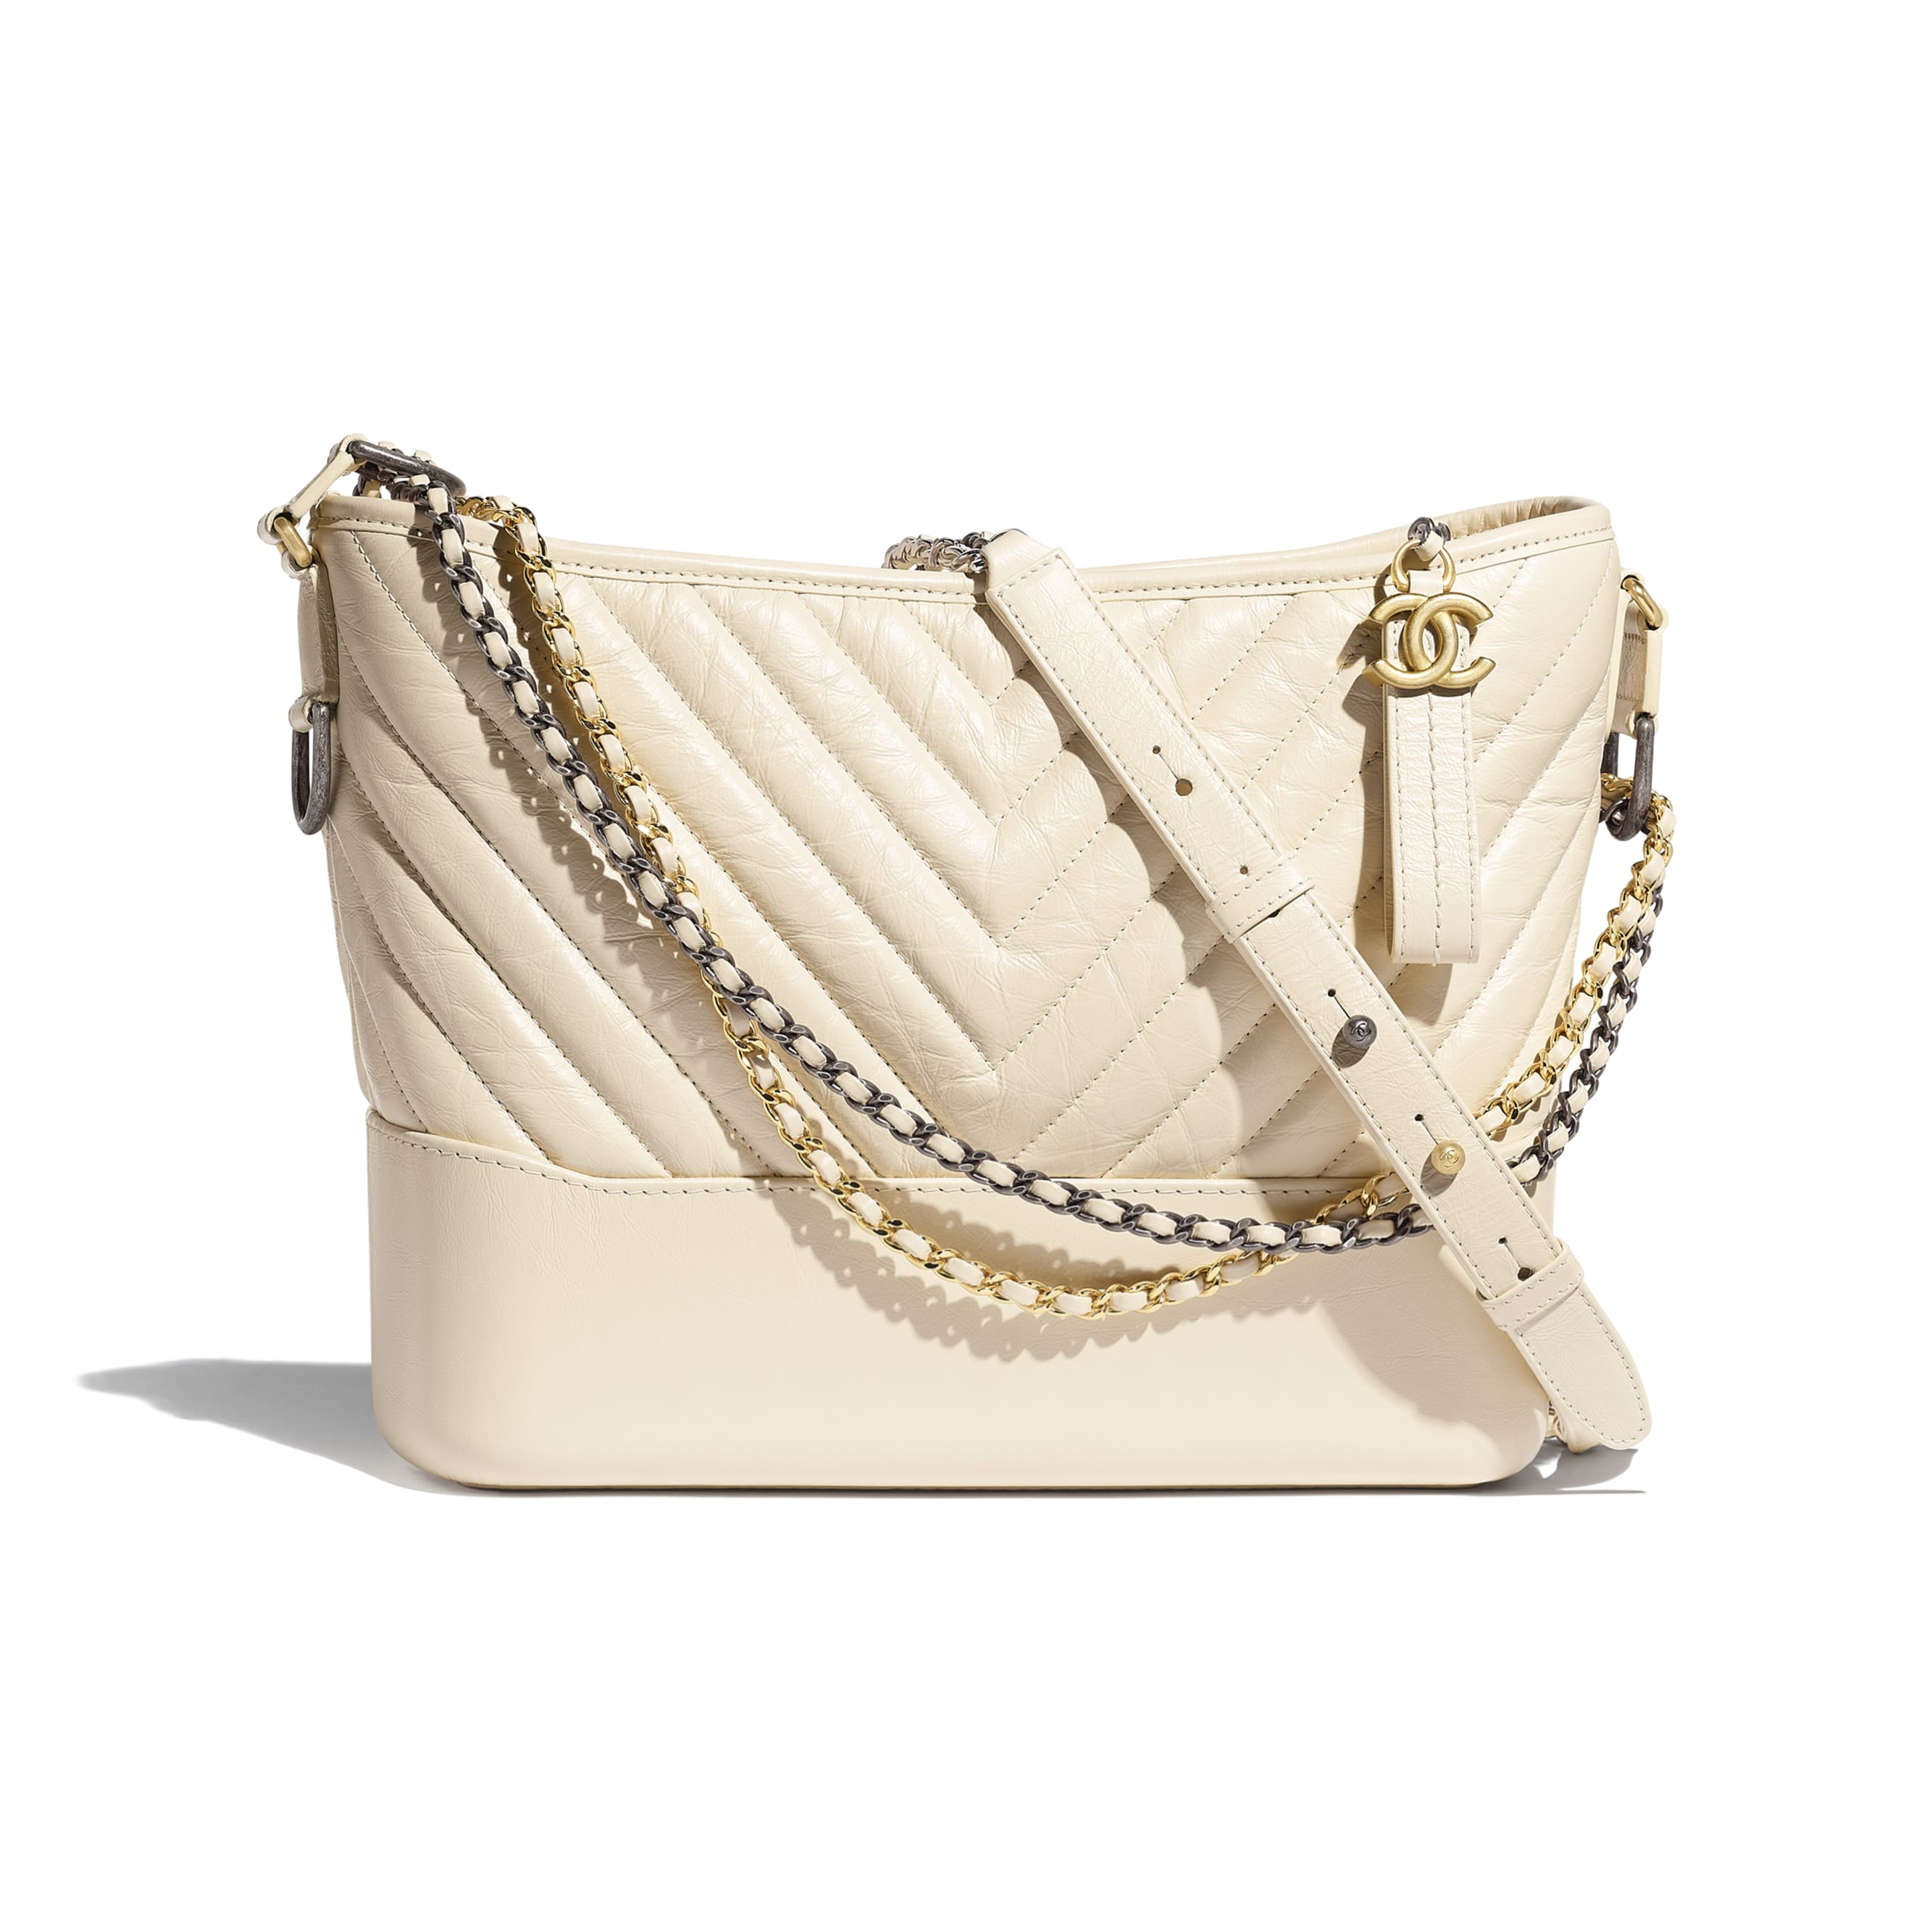 CHANEL'S GABRIELLE Large Hobo Bag - Light Beige - Aged Calfskin, Smooth Calfskin, Gold-Tone & Silver-Tone Metal - CHANEL - Default view - see standard sized version